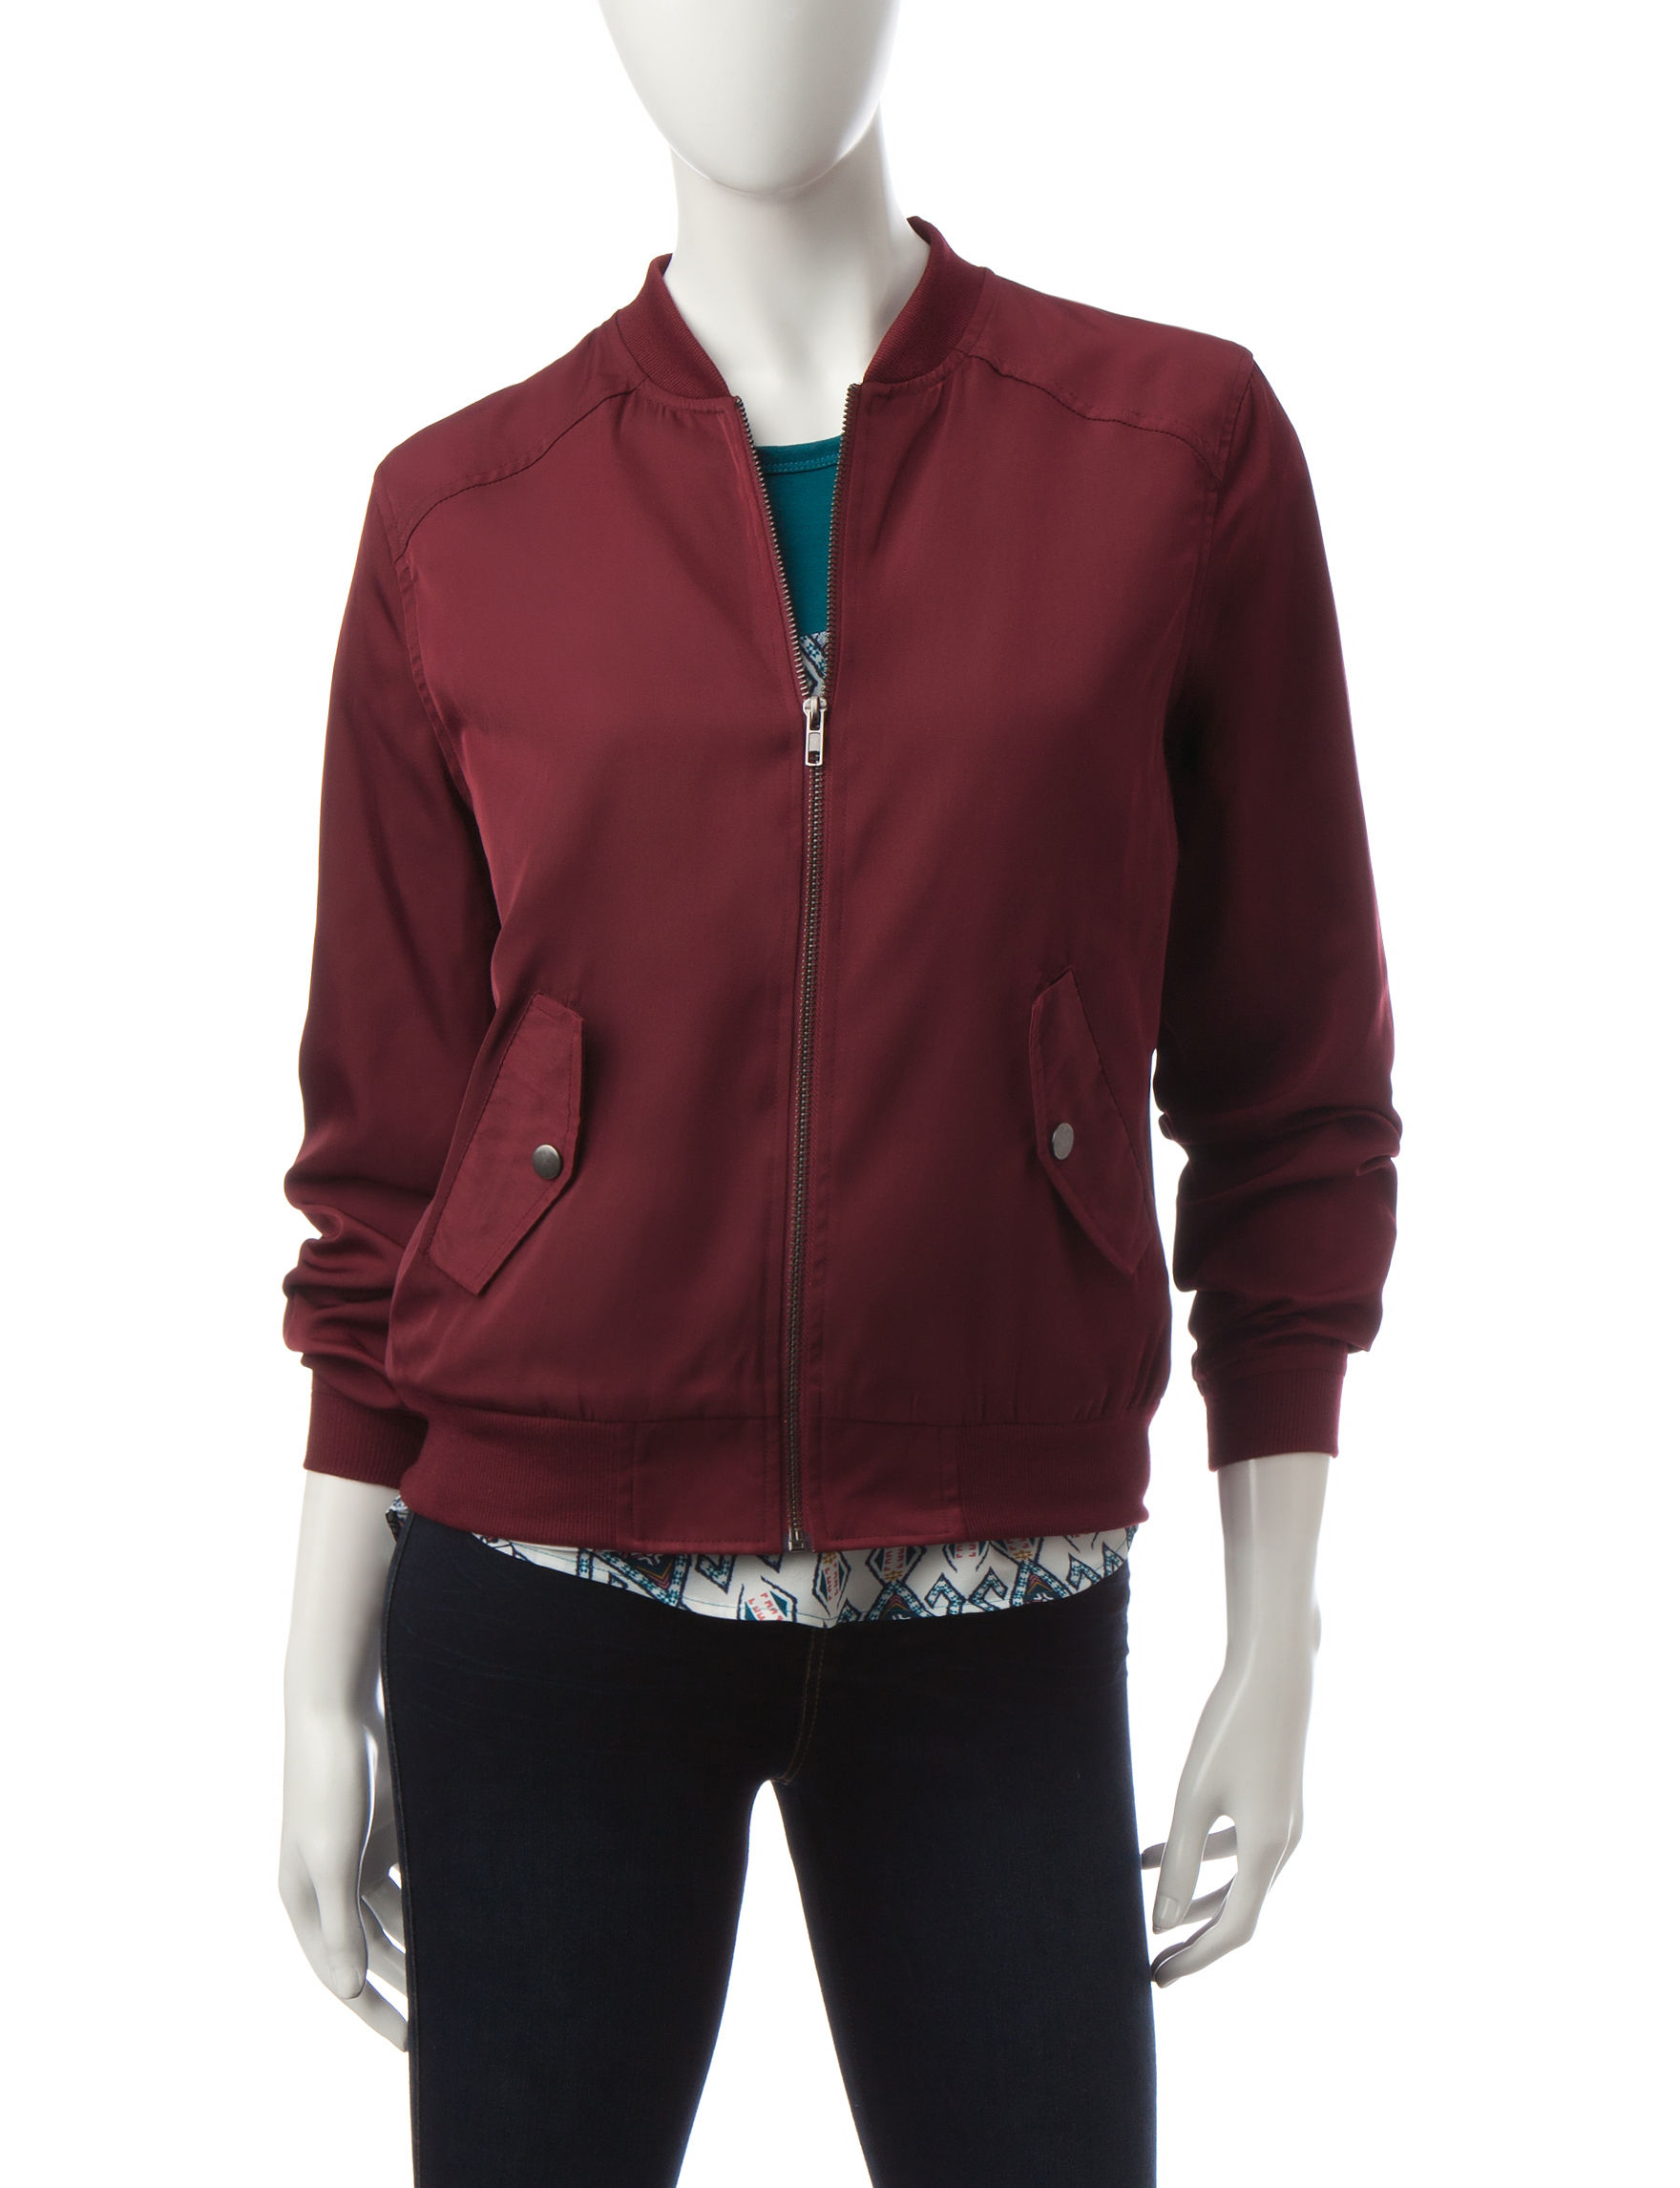 Justify Burgundy Lightweight Jackets & Blazers